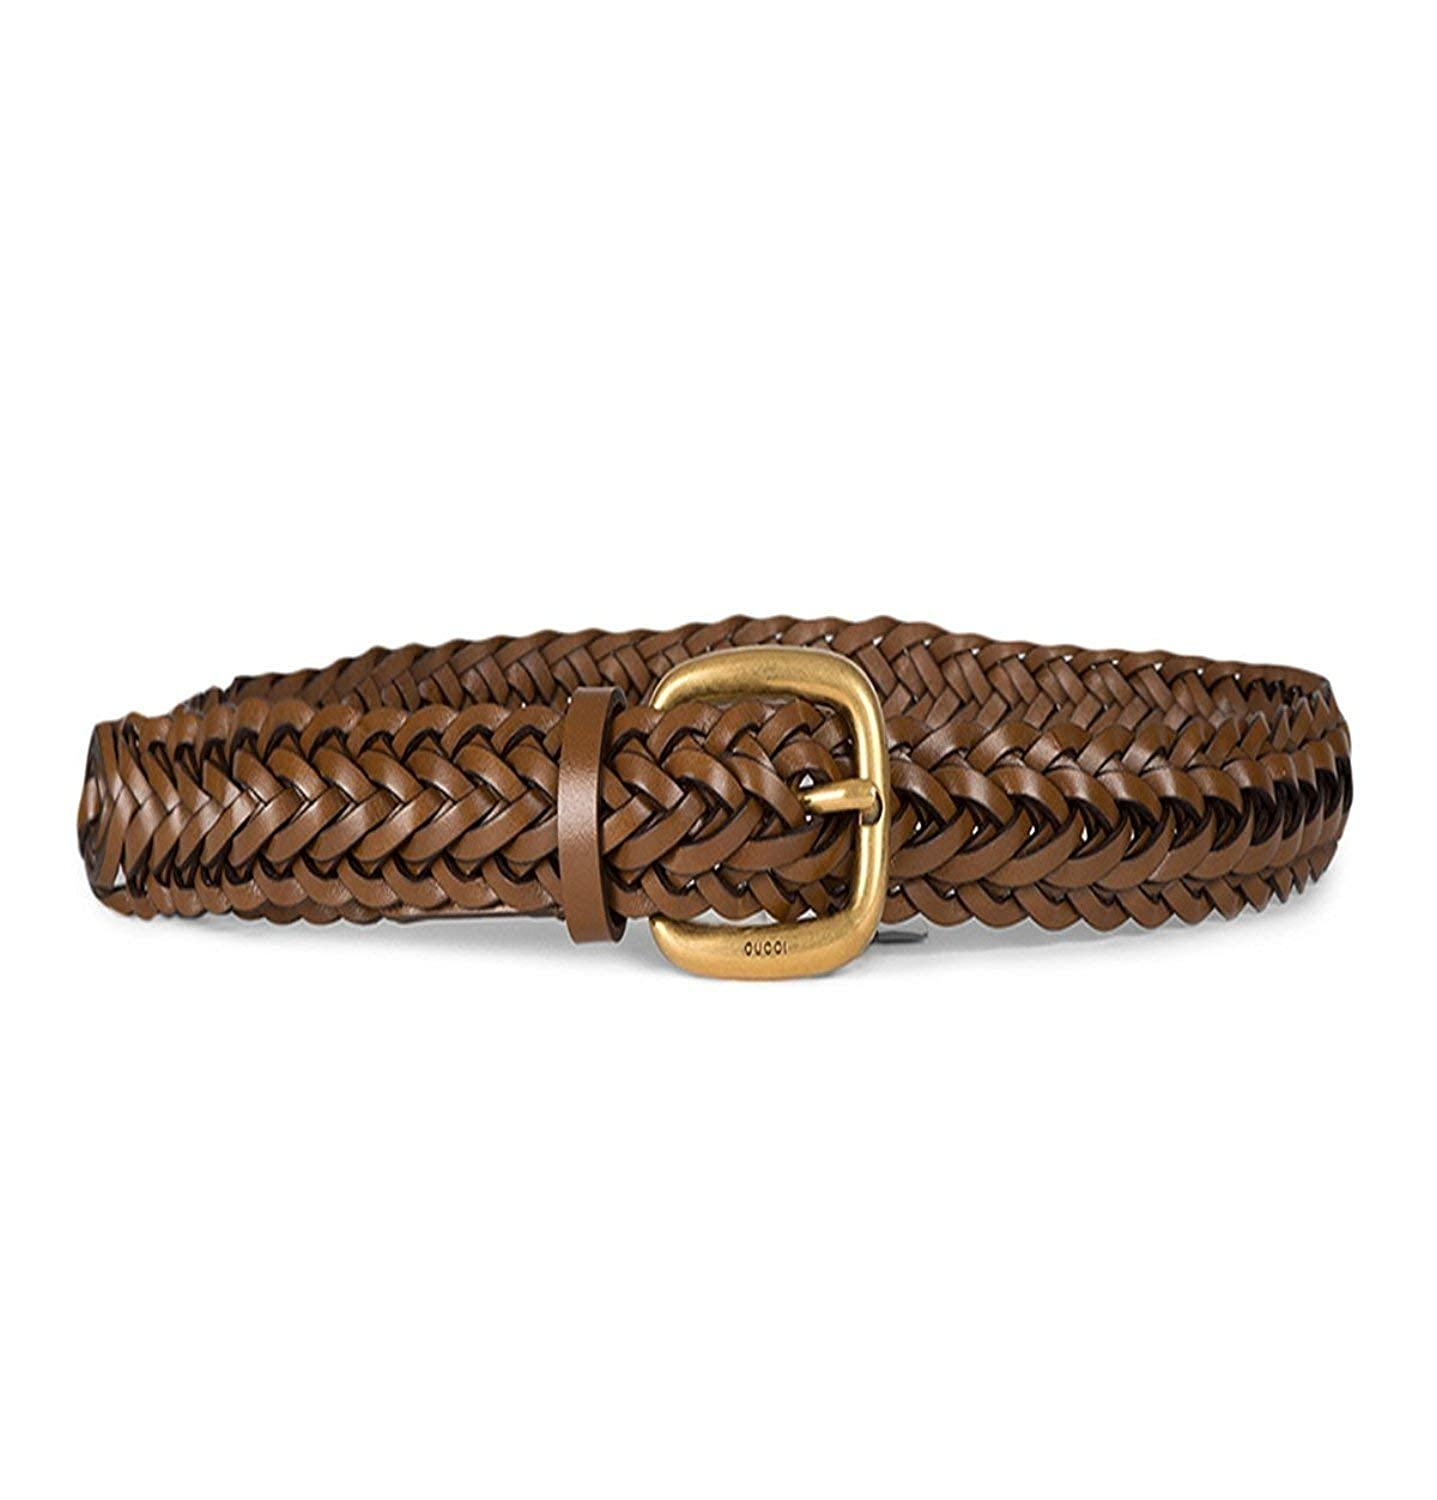 d768da597fb Amazon.com  Gucci Women s Braided Leather Gold Buckle Belt 380606 Brown   Clothing